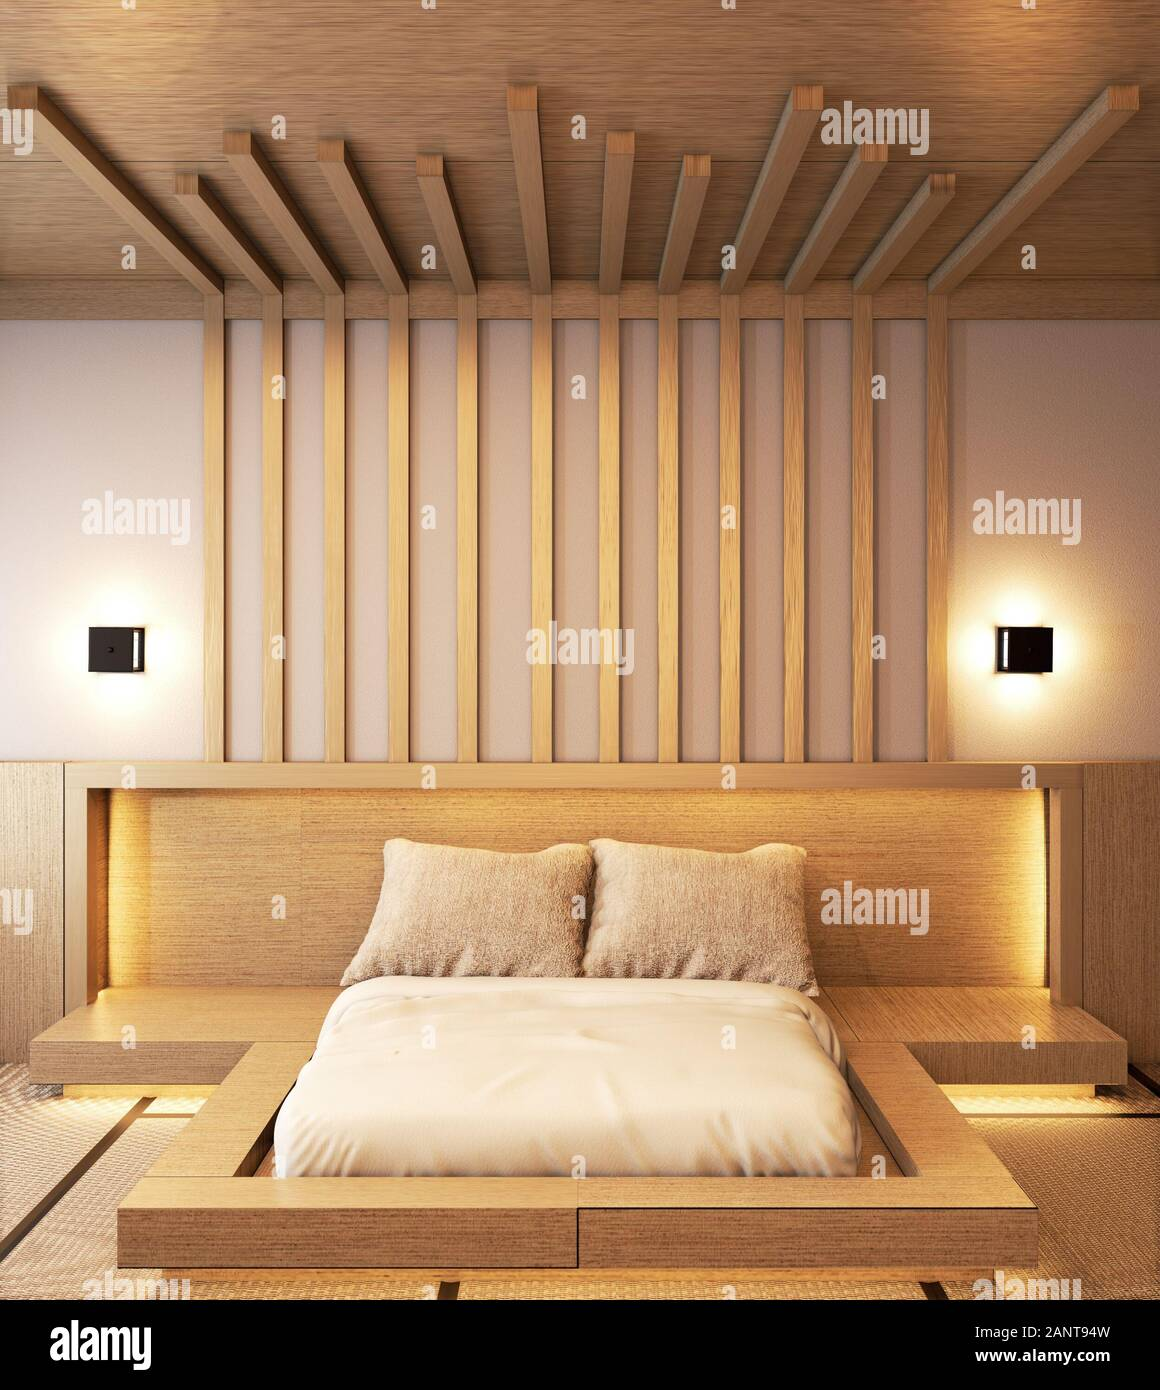 How you arrange bedroom furniture can make a night and day difference. Bedroom Design Japanese Wooden With Battens And Hiden Light Wall Design 3d Rendering Stock Photo Alamy